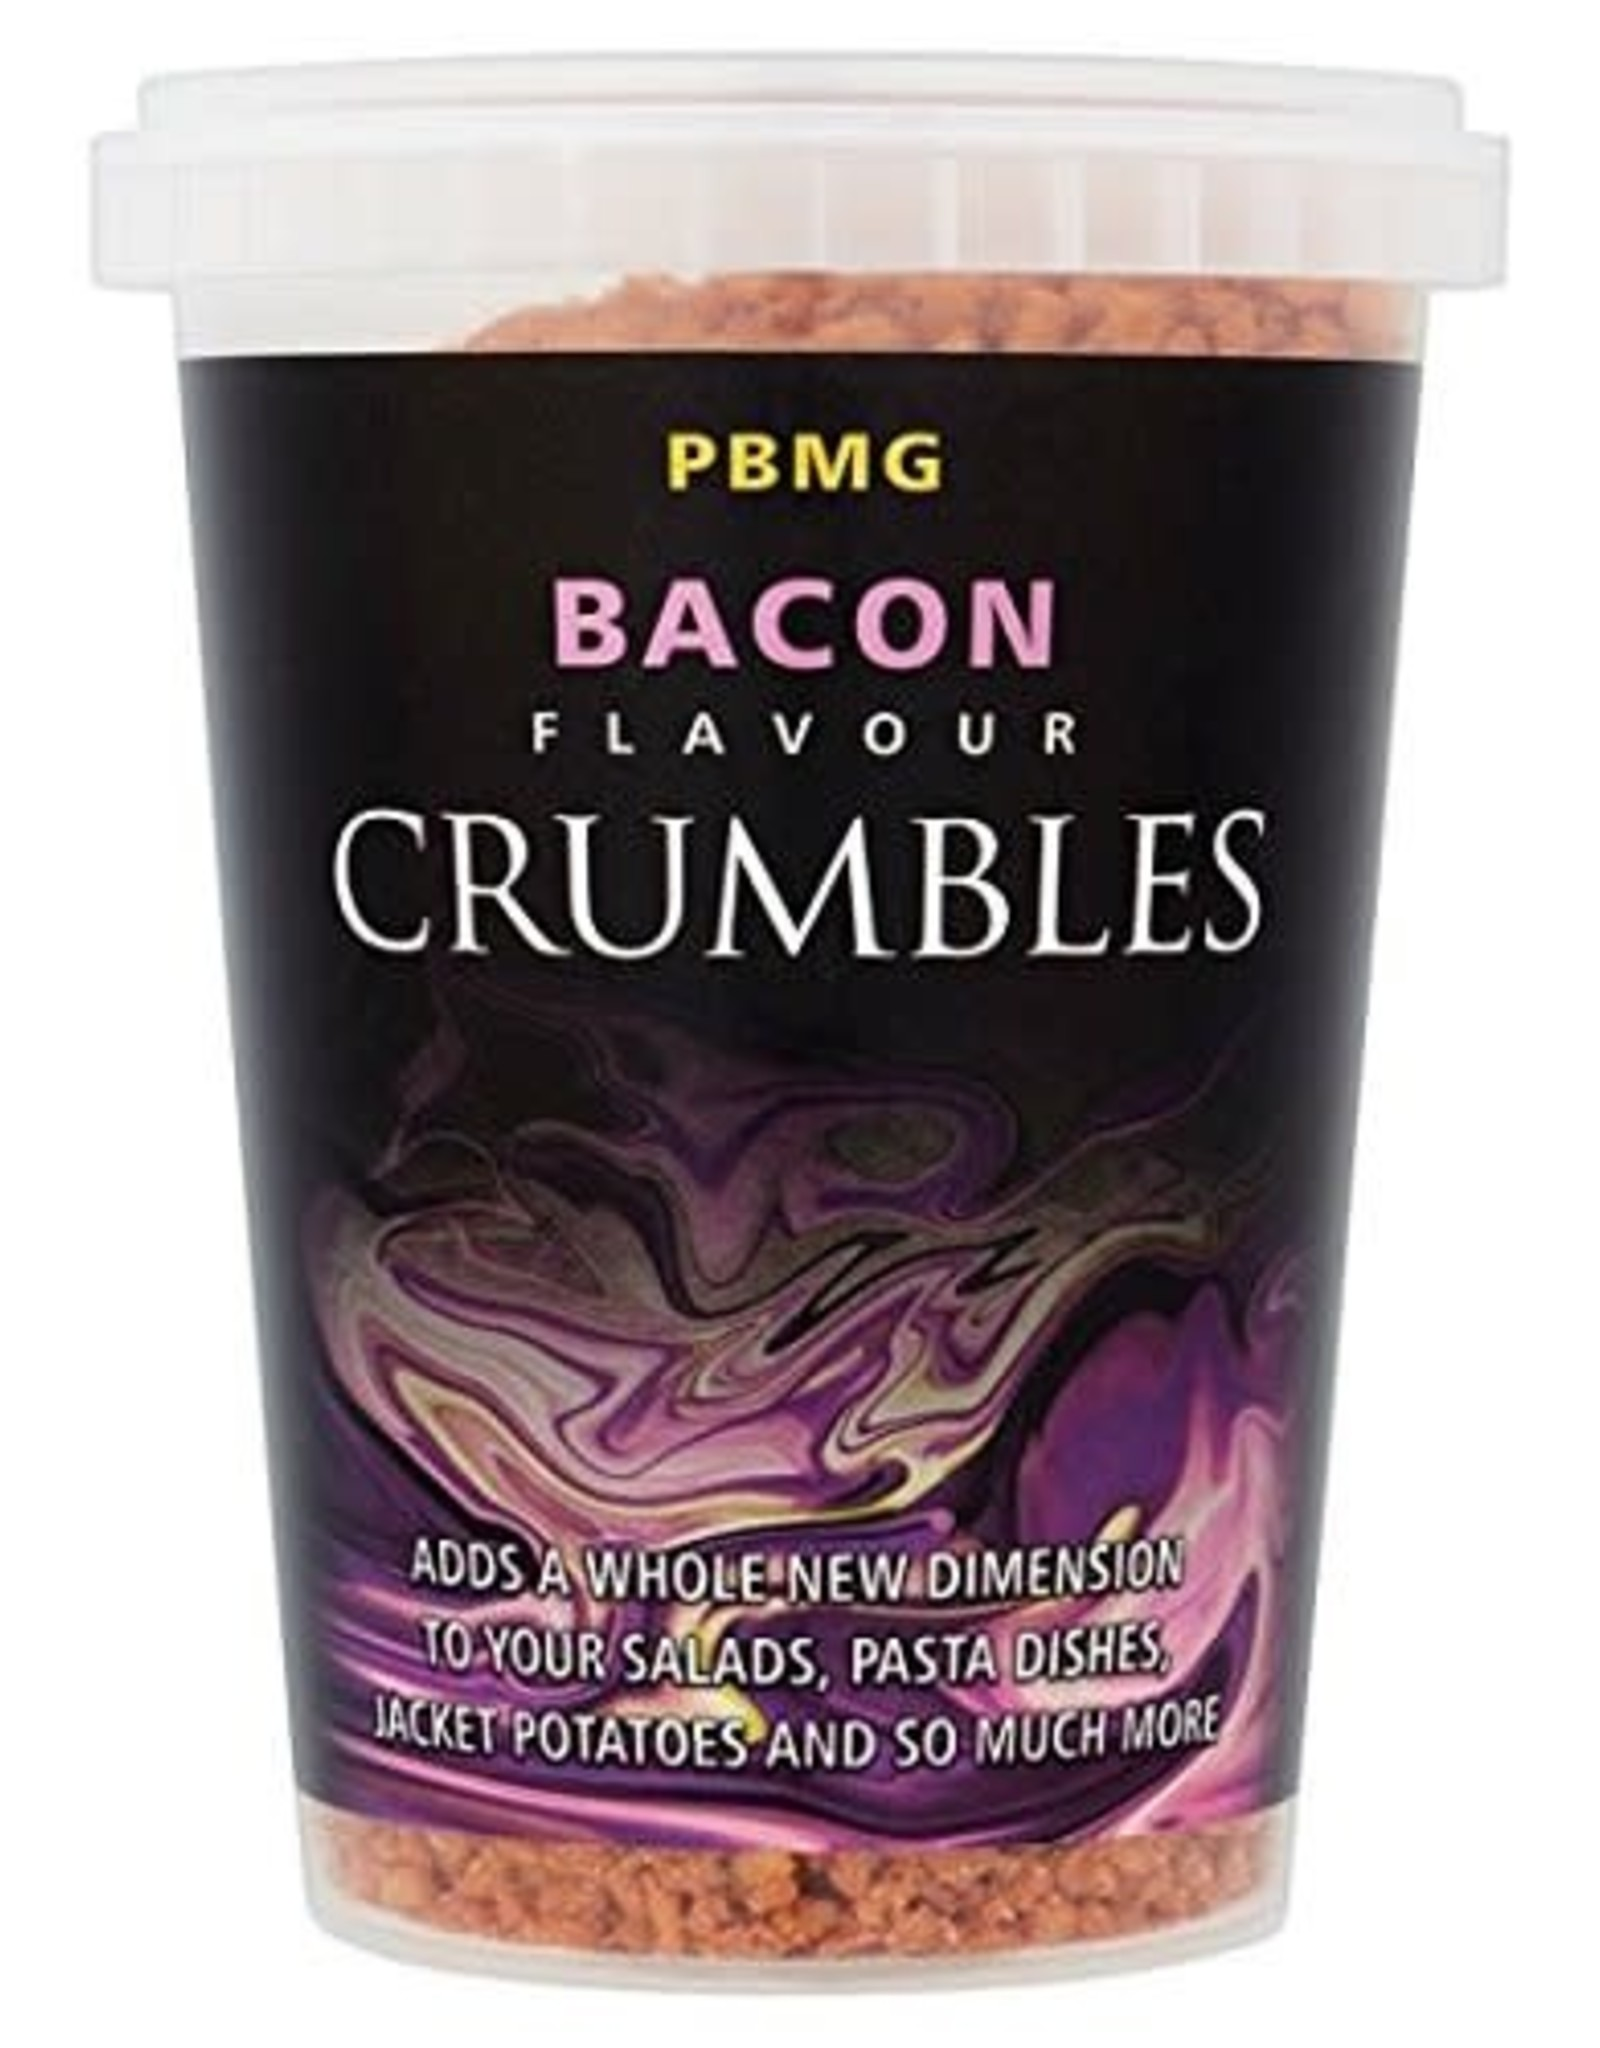 PBMG Bacon Flavour Crumbles 240g